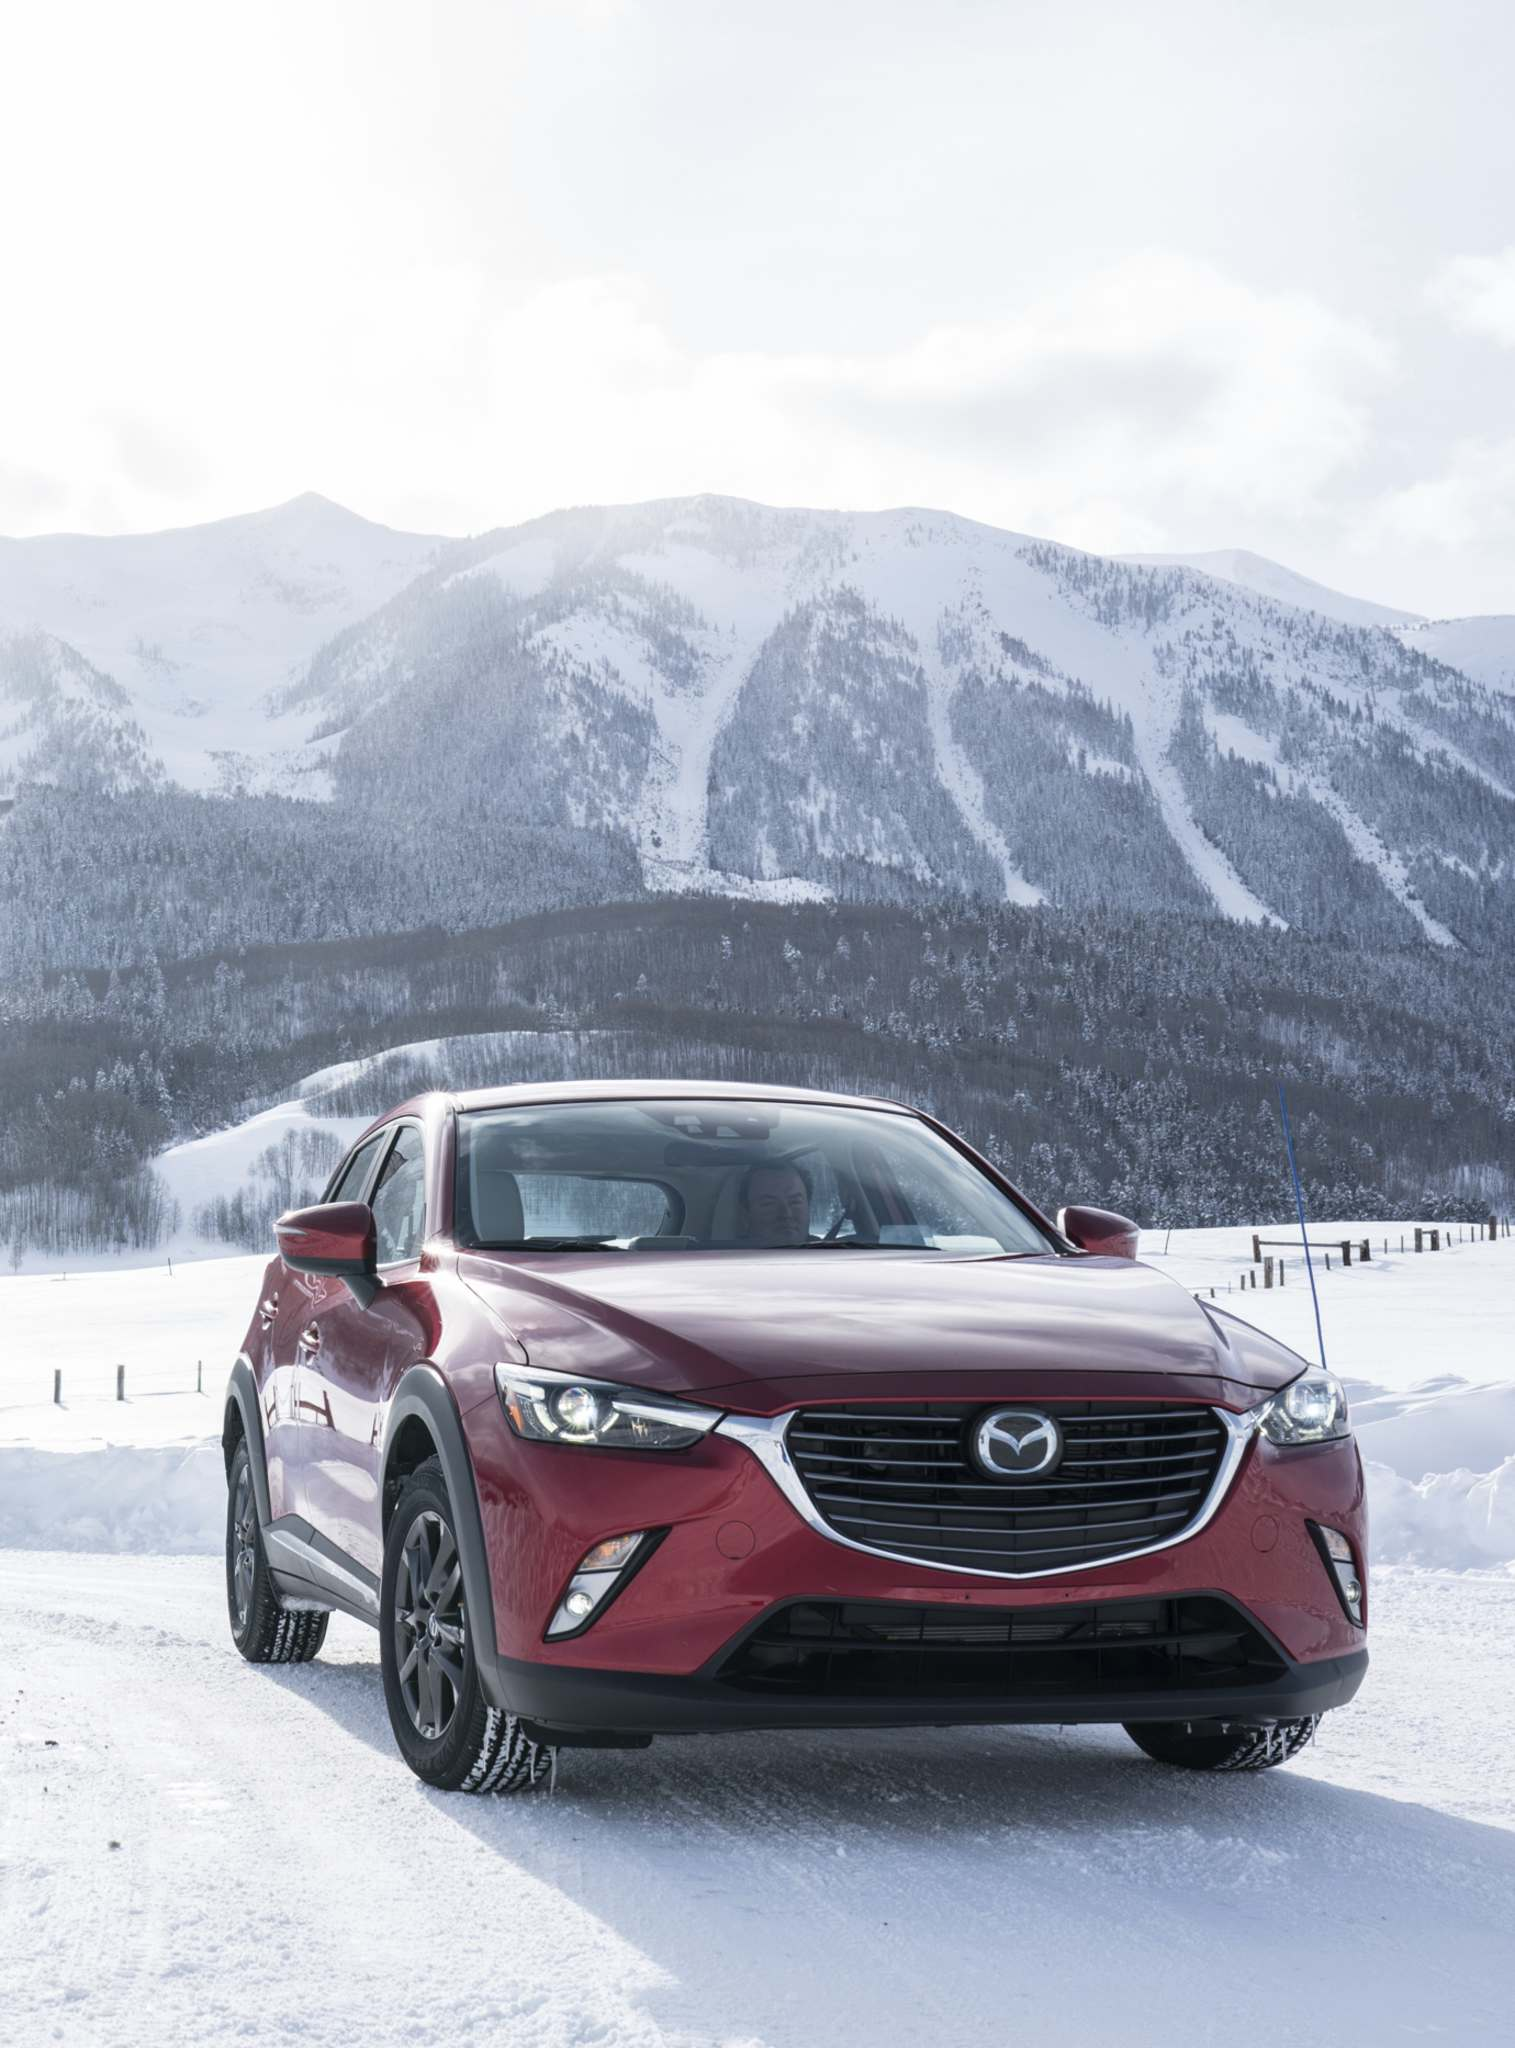 MazdaAll CX-3 models pack a 2.0-litre four-cylinder that generates 146 horsepower and 146 pound-feet of torque.